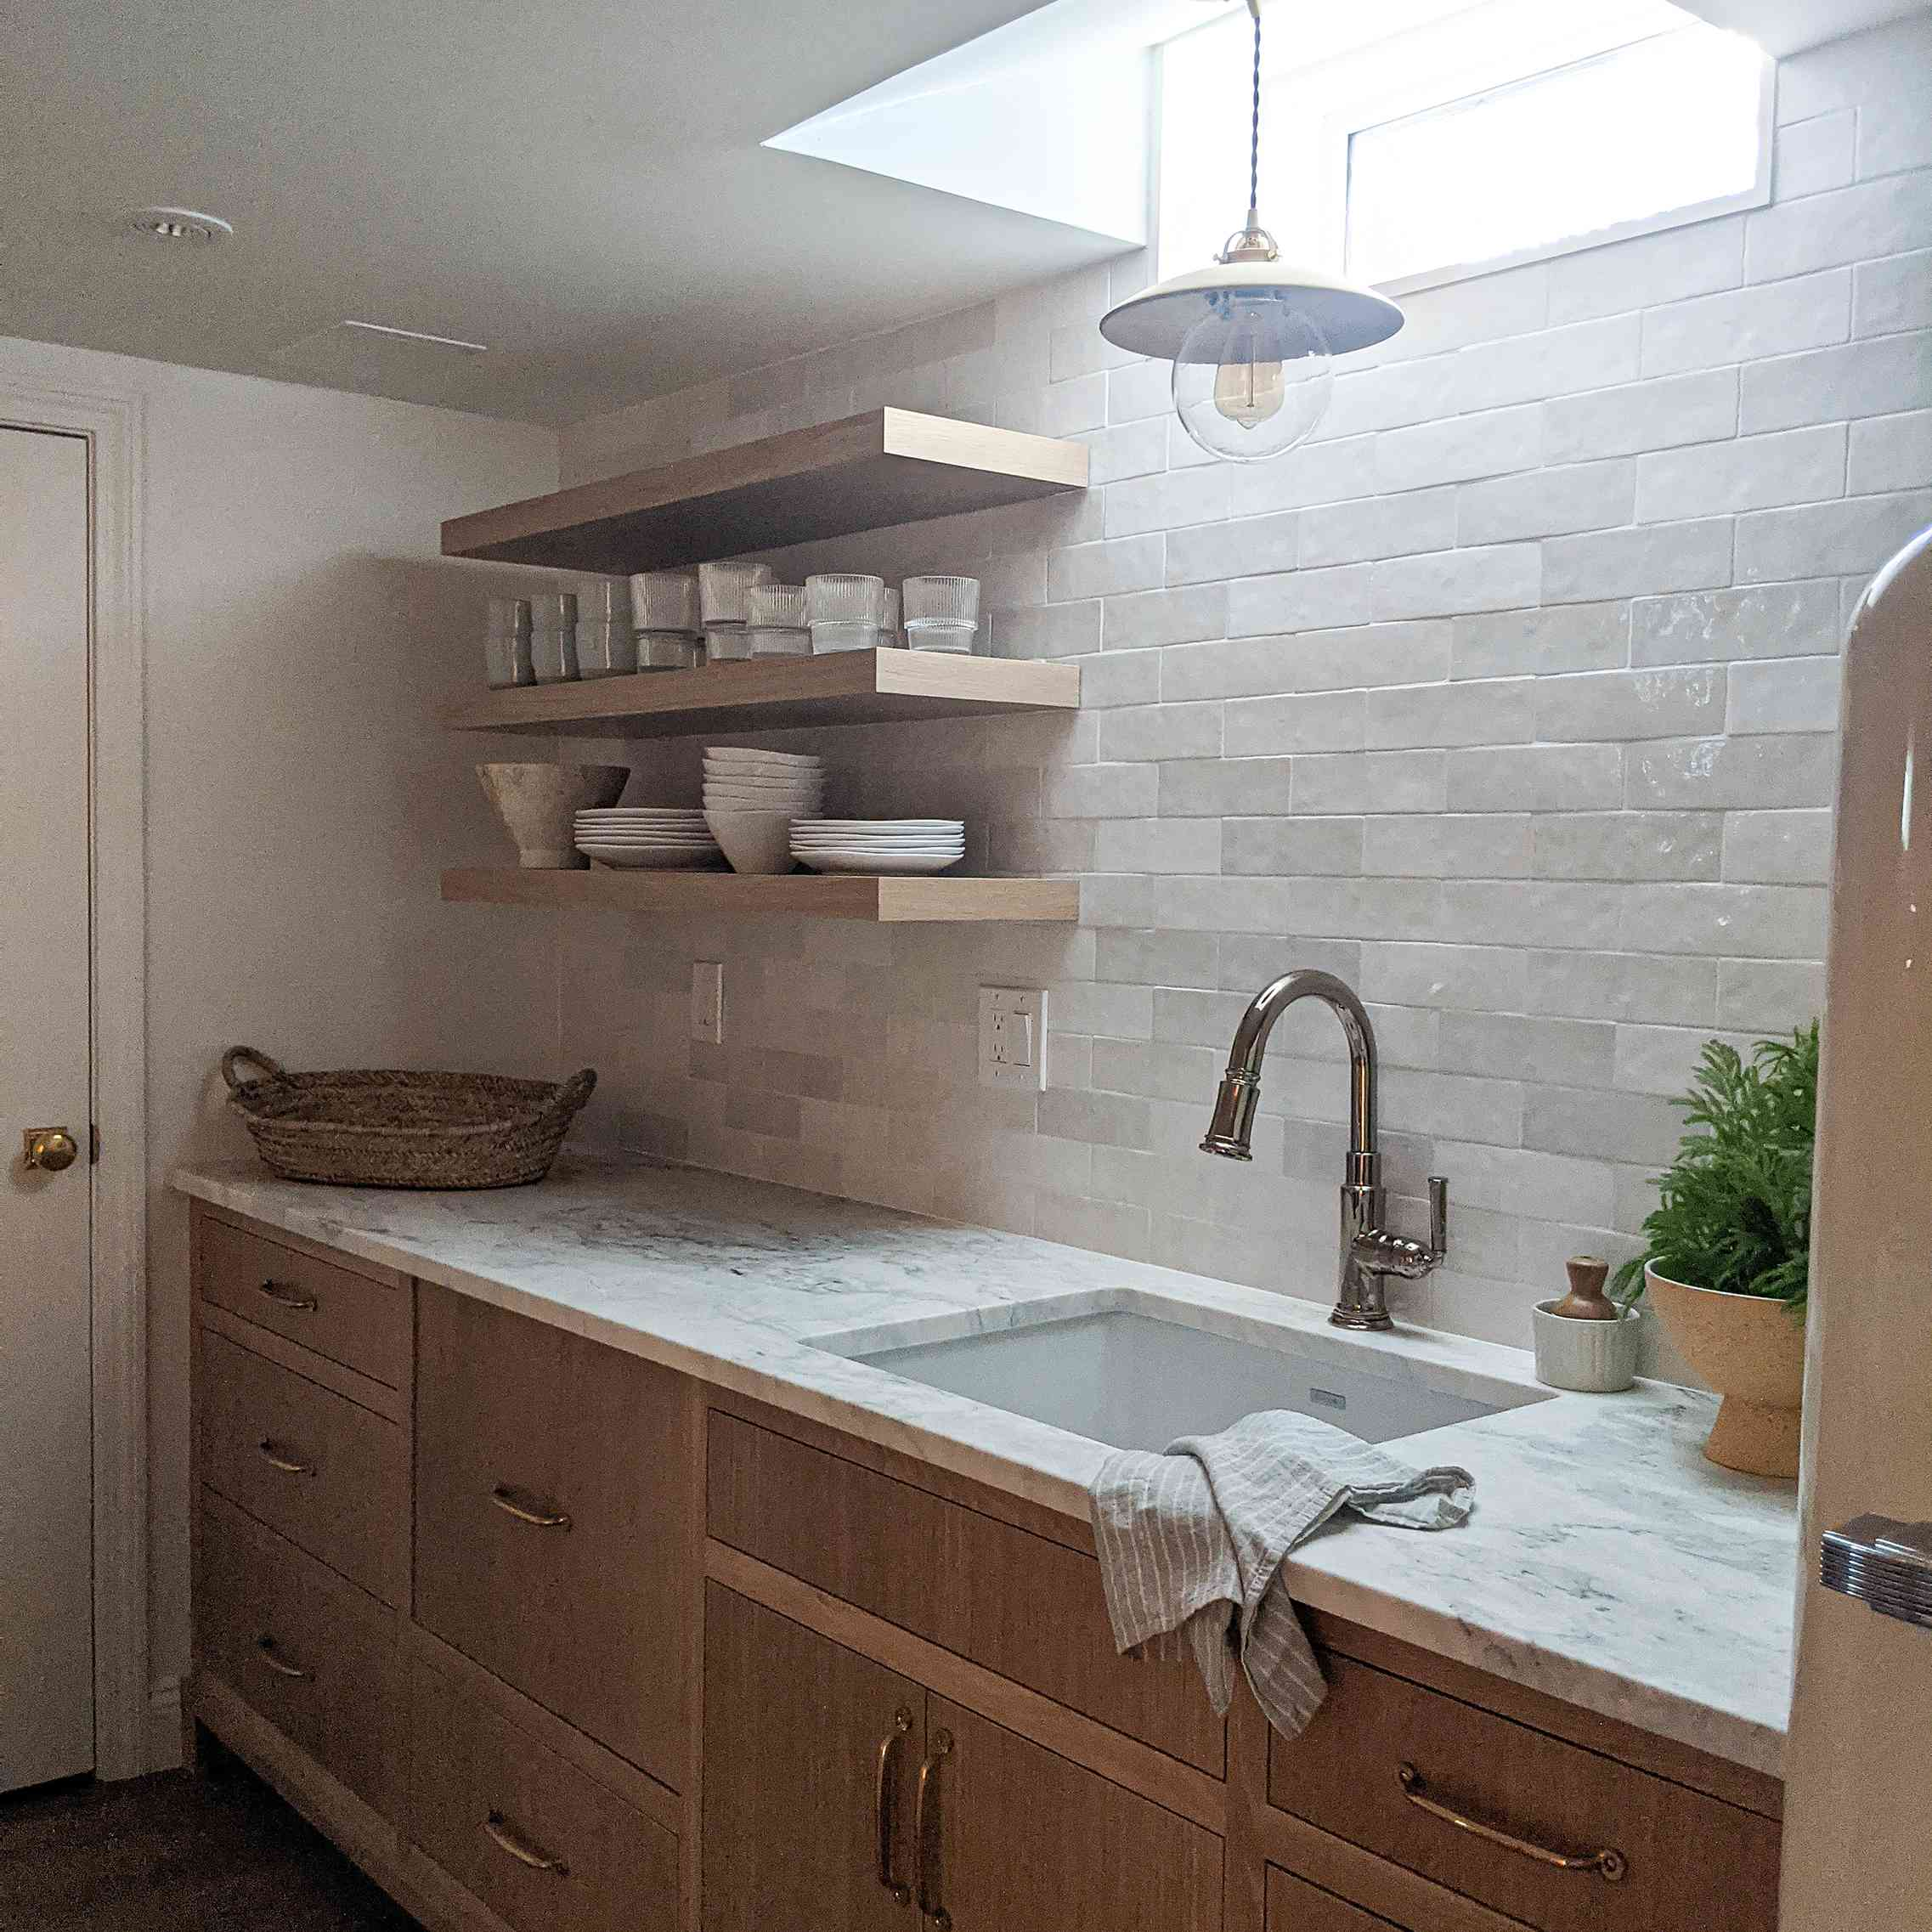 kitchen has a skylight over the sink and open shelving